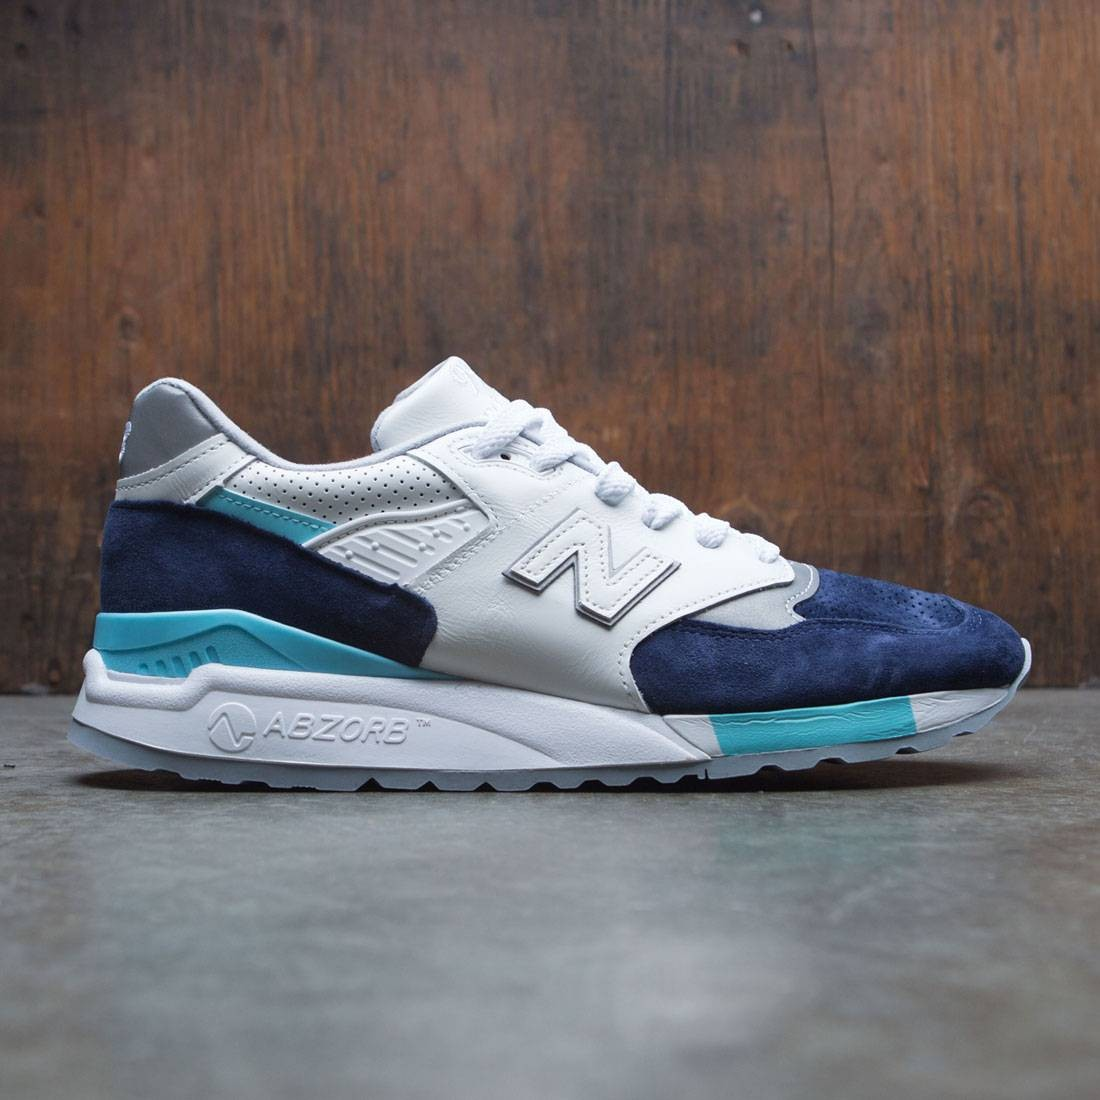 bae5baead3f0 New Balance Men 998 Winter Peaks M998WTP - Made In USA white navy aqua